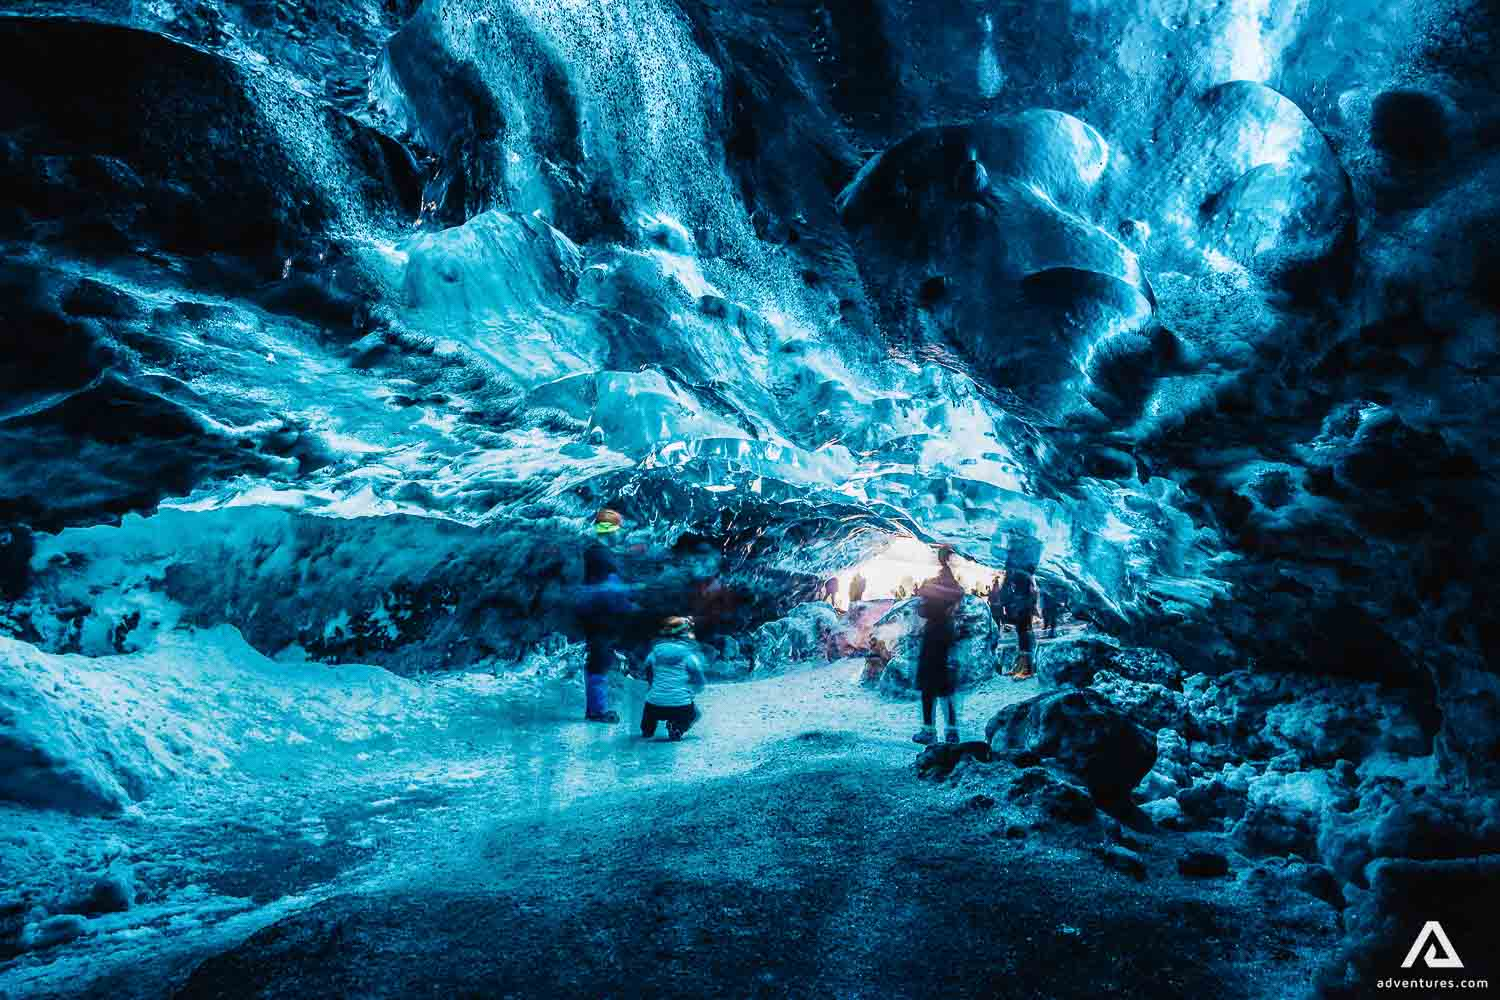 Blue ice cave exploring